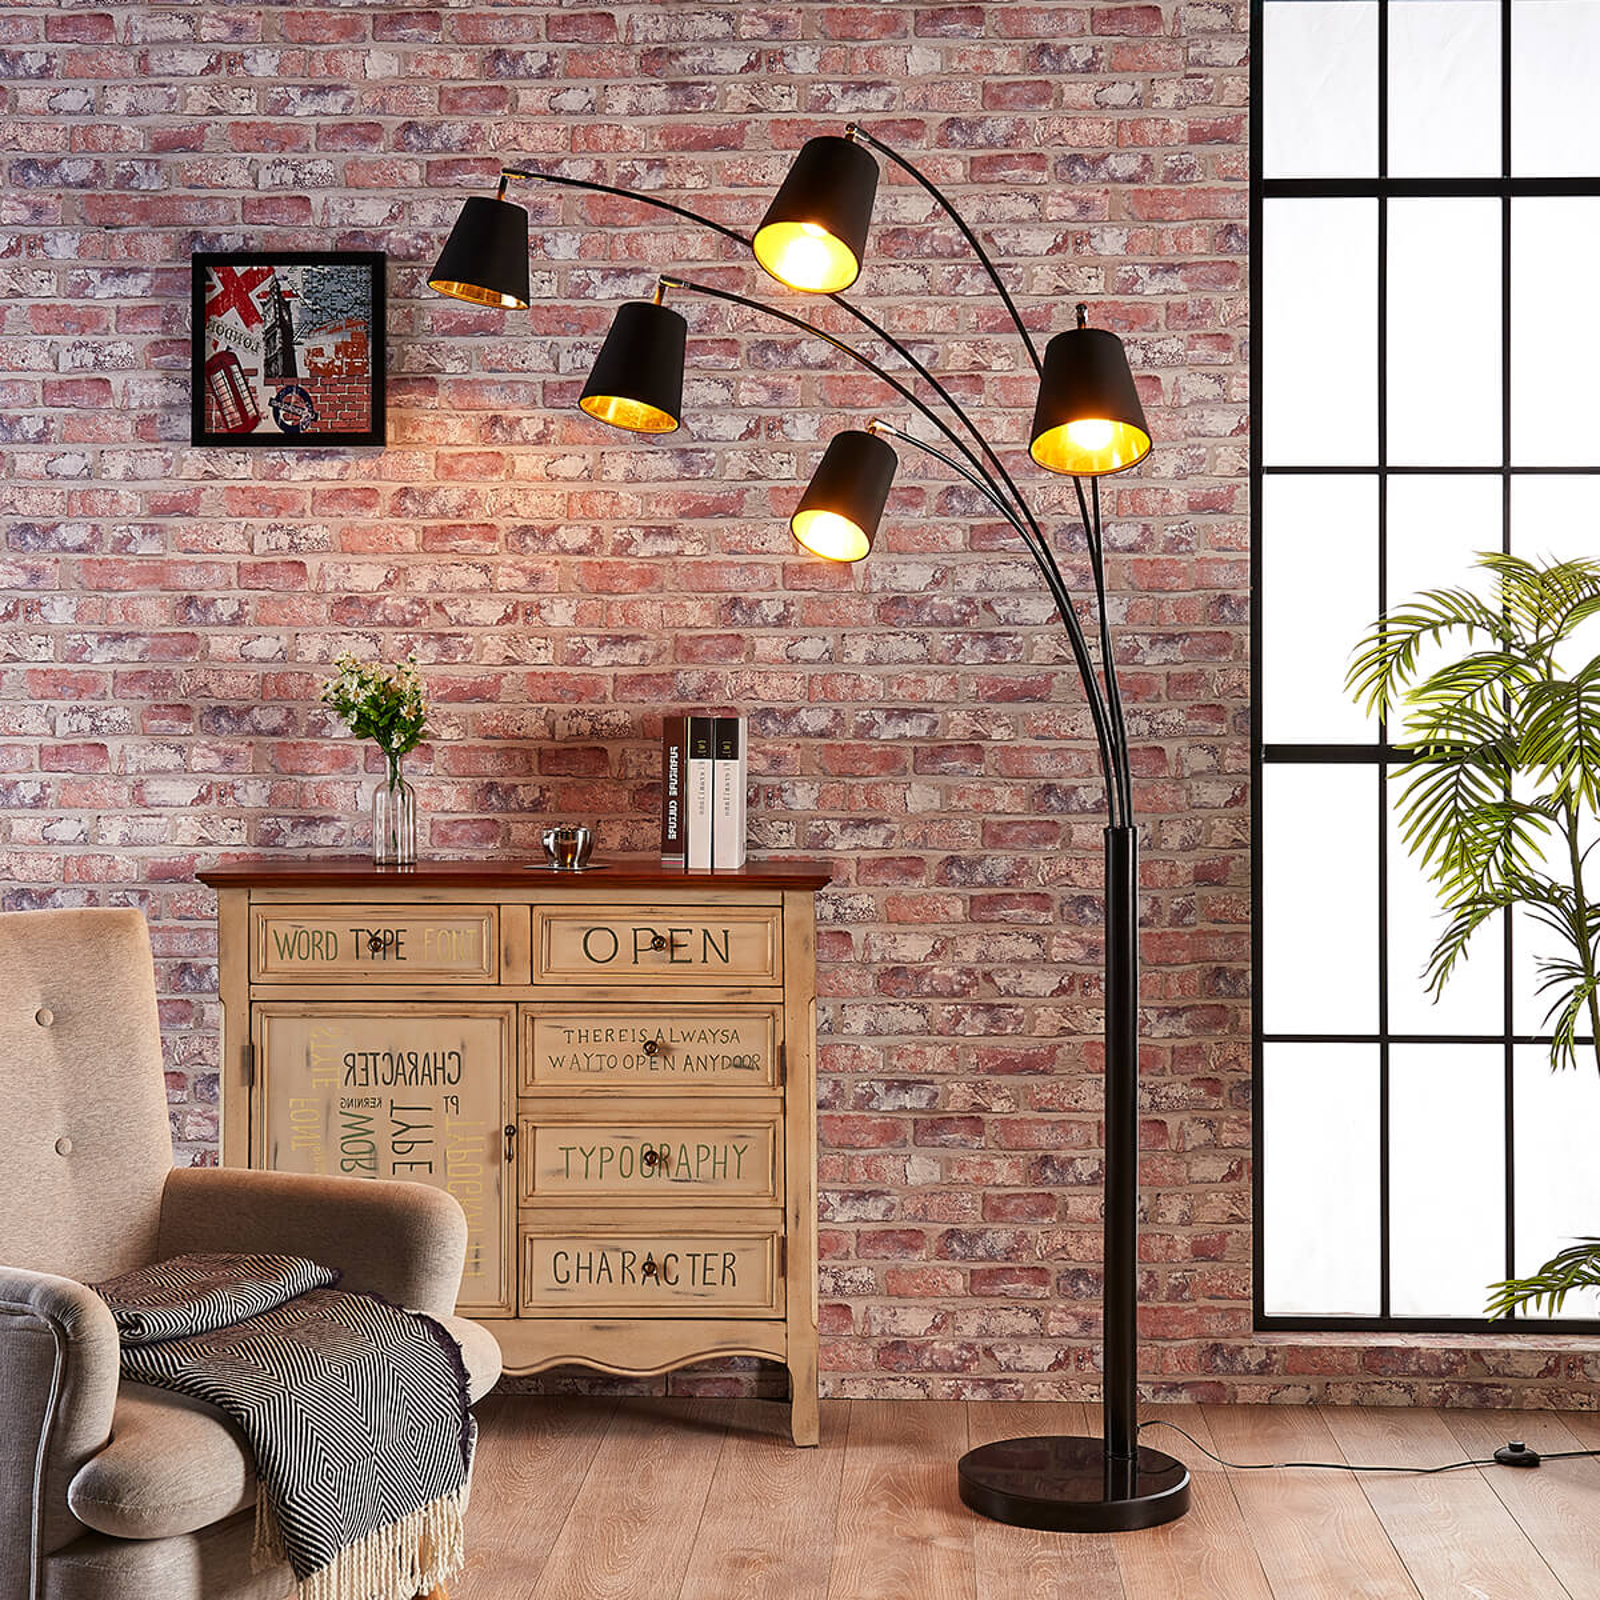 5.lamps textiele vloerlamp Tinne